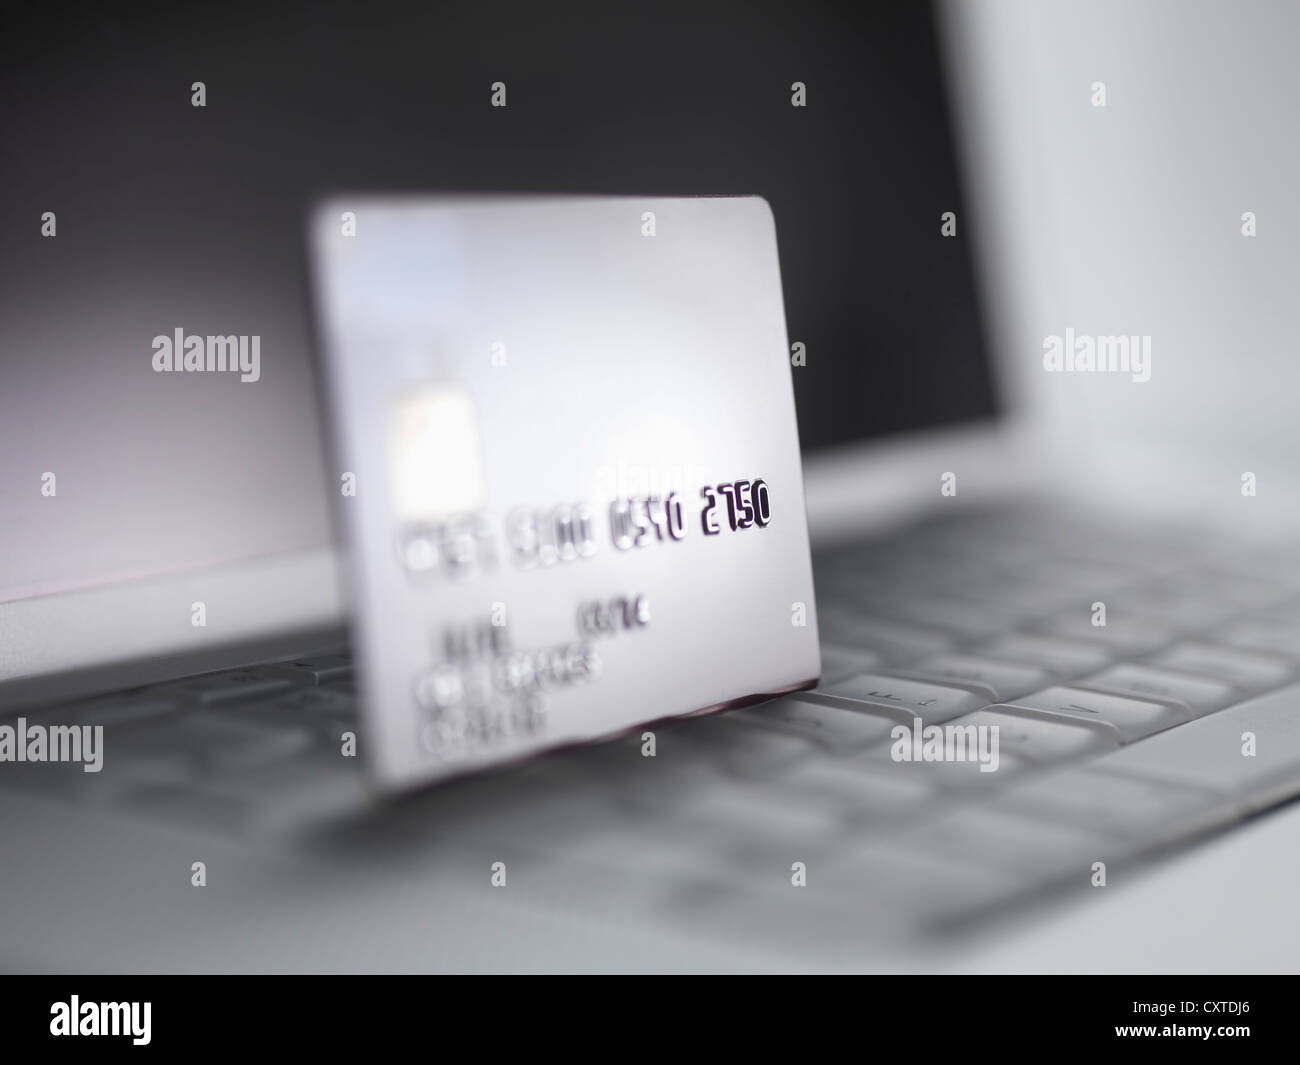 Close up of credit card on keyboard - Stock Image